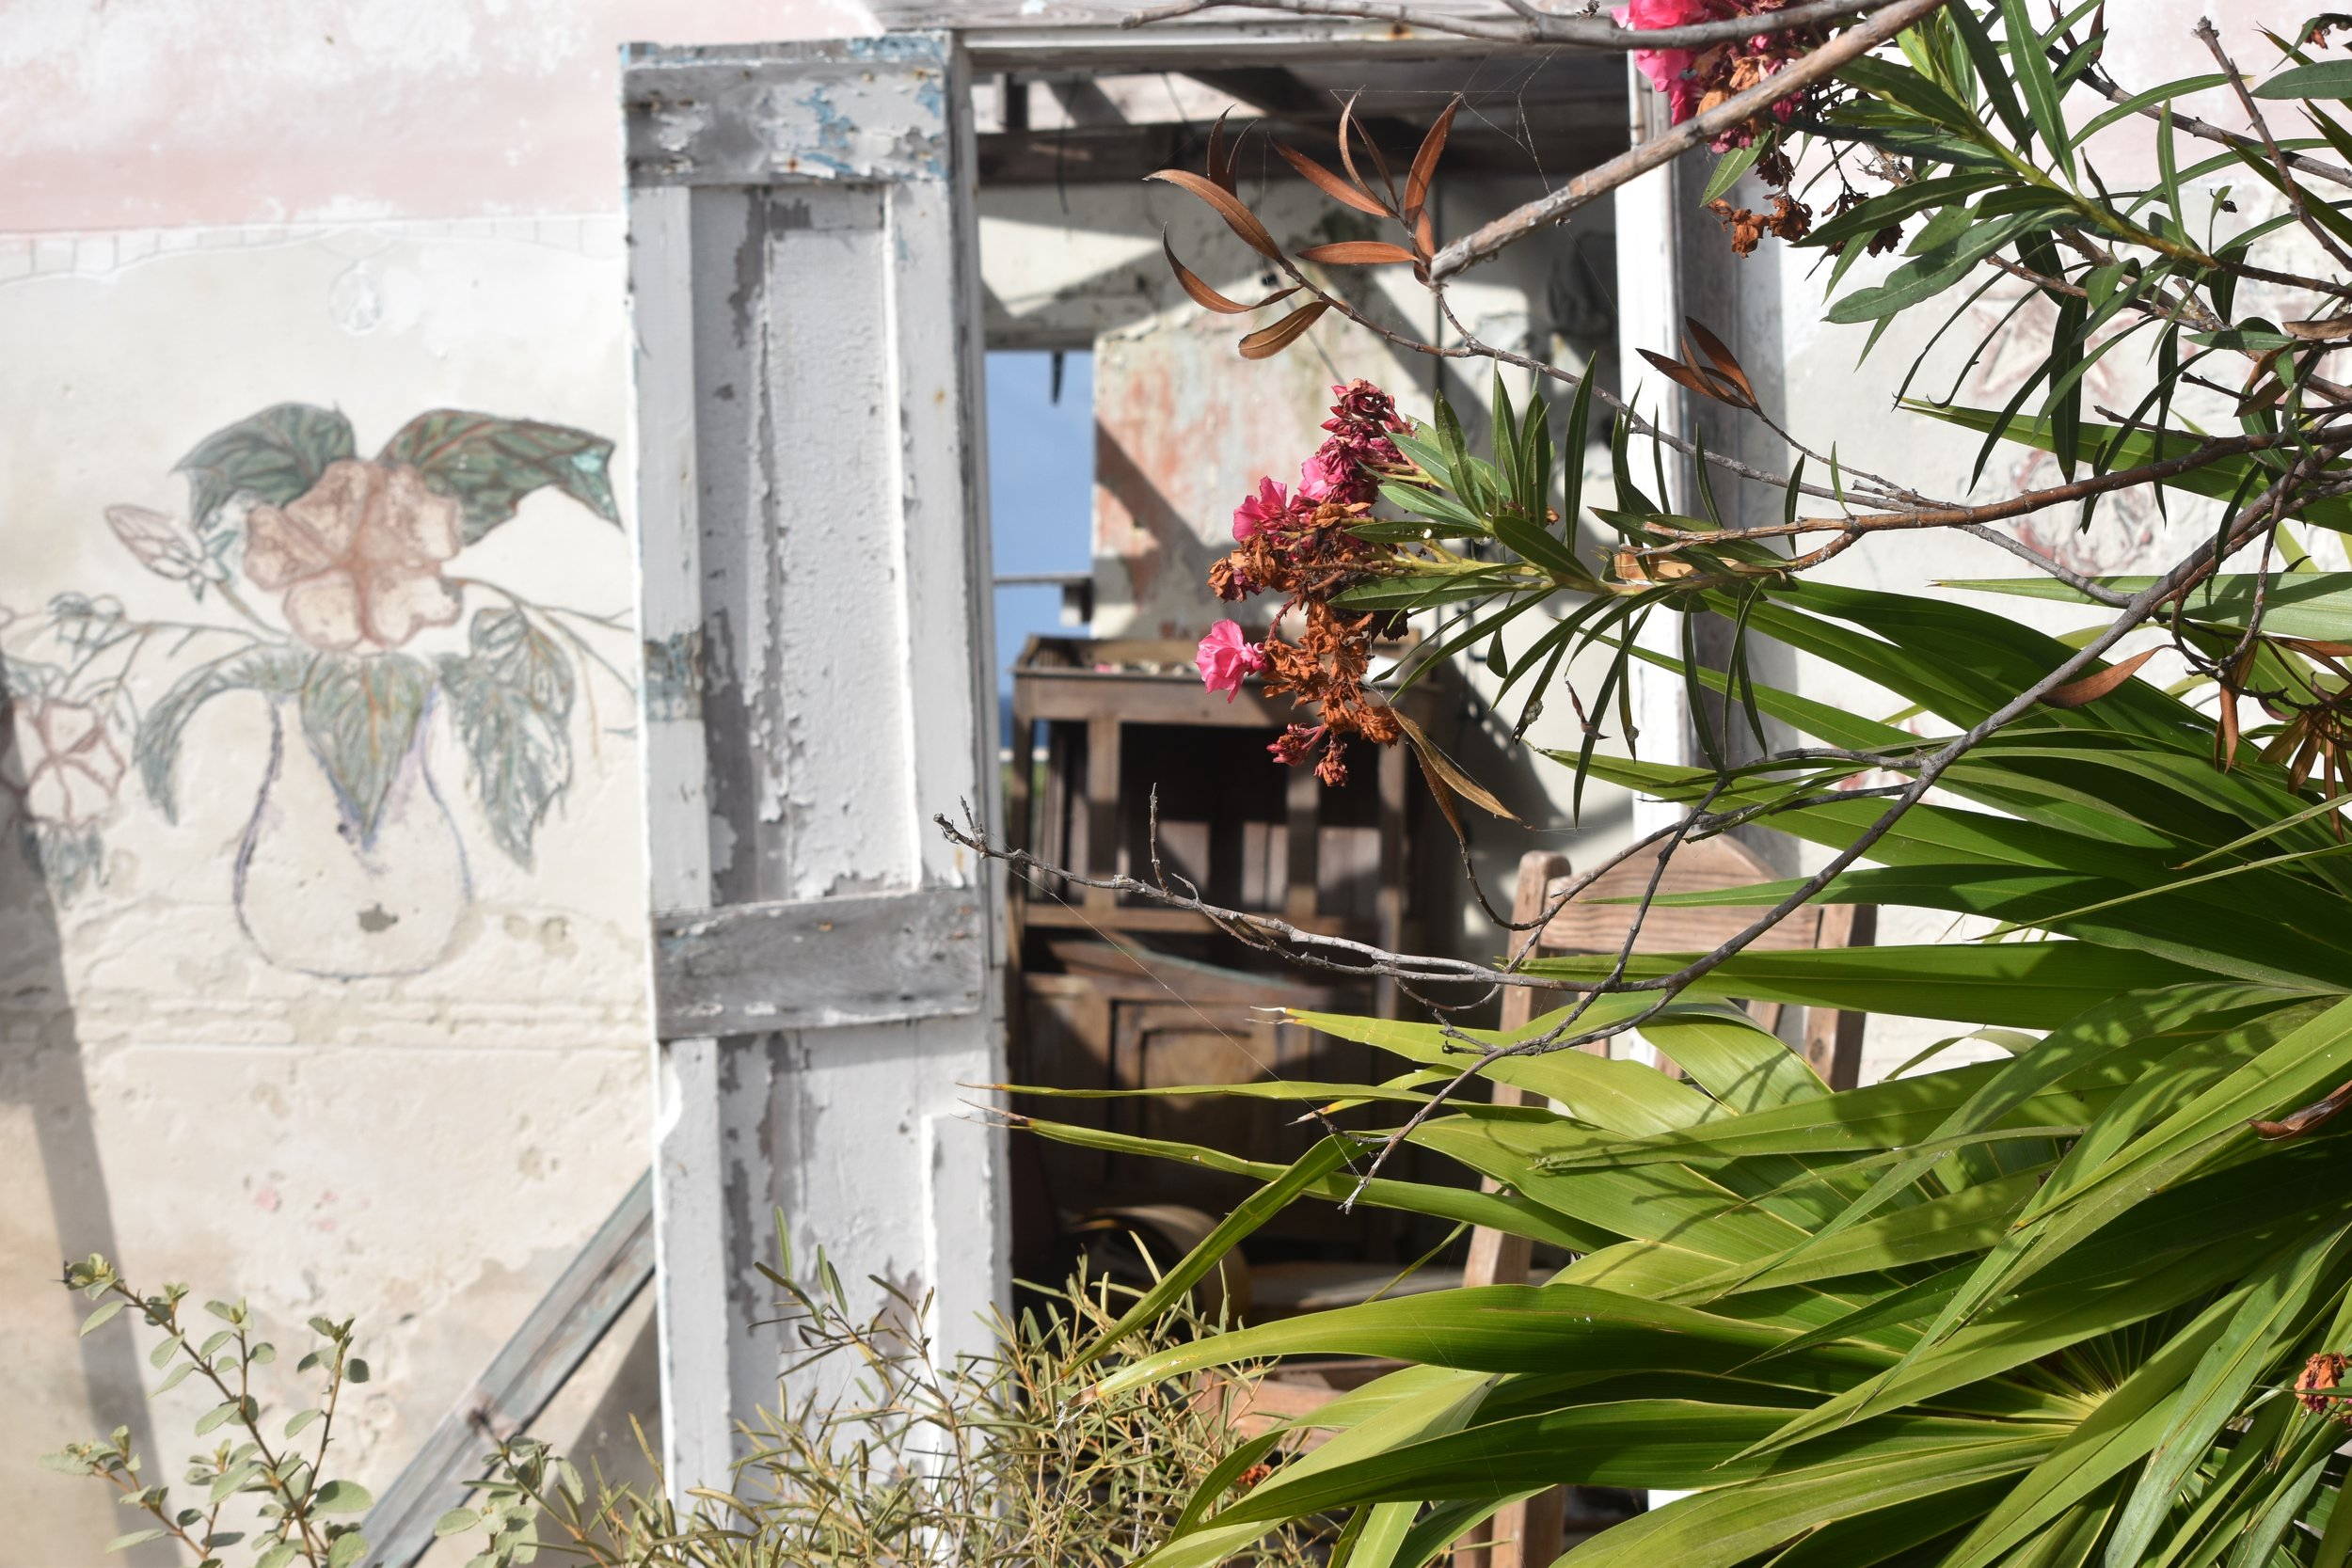 Art in daily life. Blooms of oleander and sketchings on a wall on Ragged Island. Images courtesy of Dr Ian Bethell-Bennett.